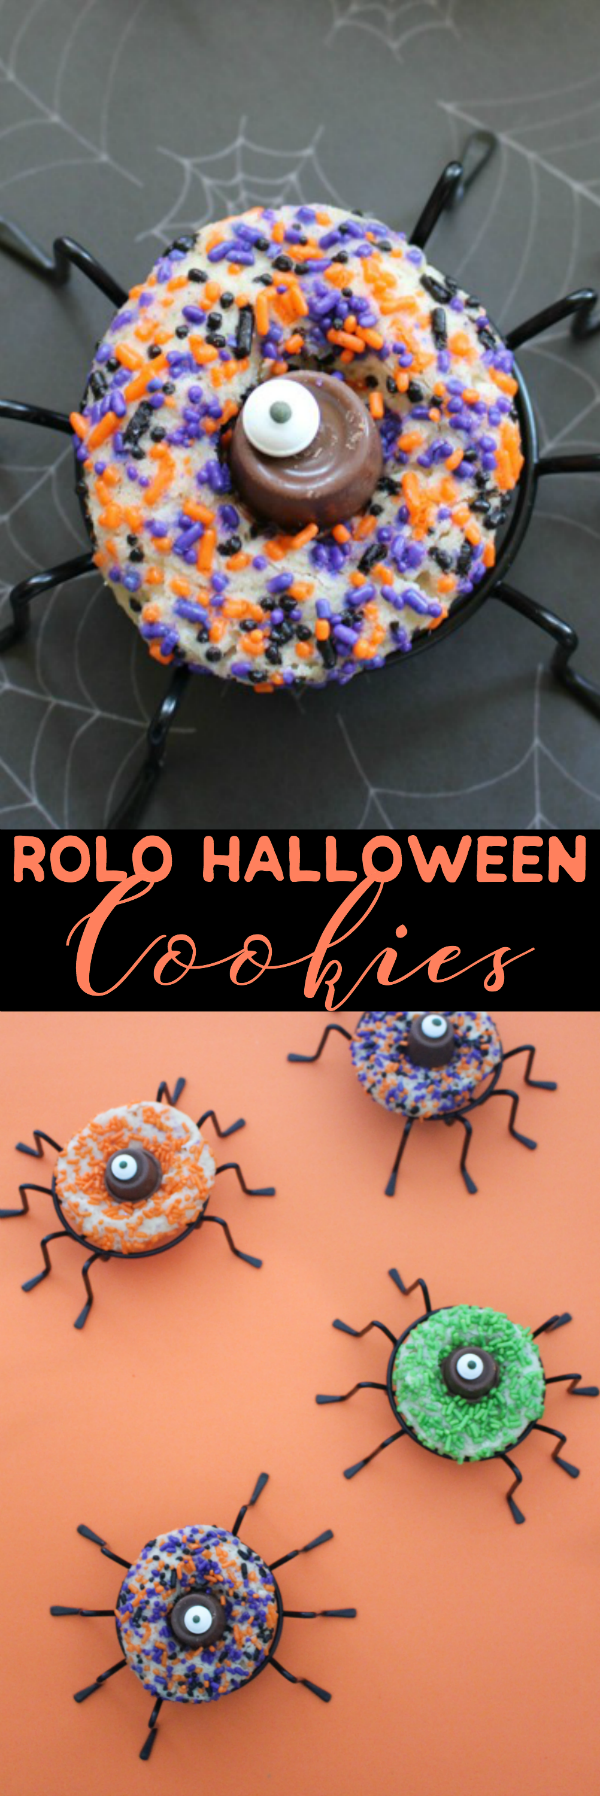 sugar cookie recipe for halloween